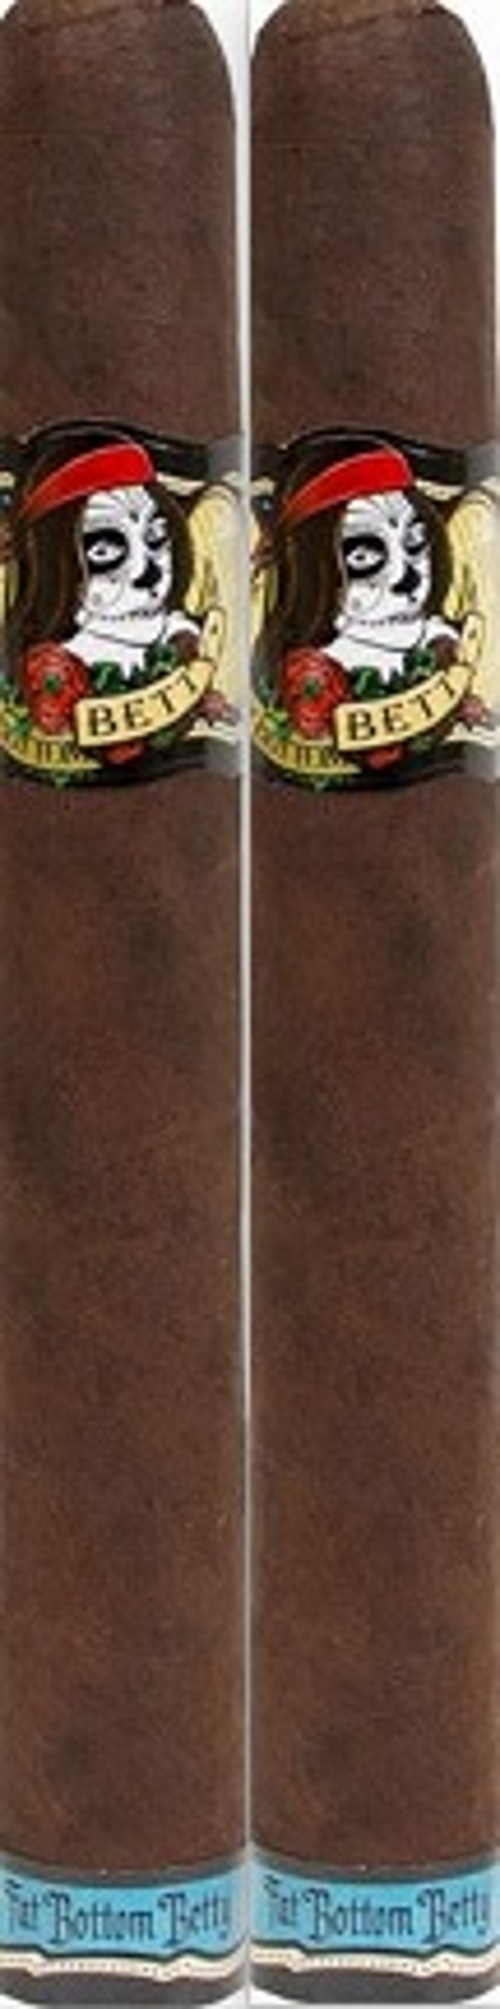 Group C Deadwood Fat Bottom Toro 2 Pack of Cigars..........with Qualifying Purchase Only!